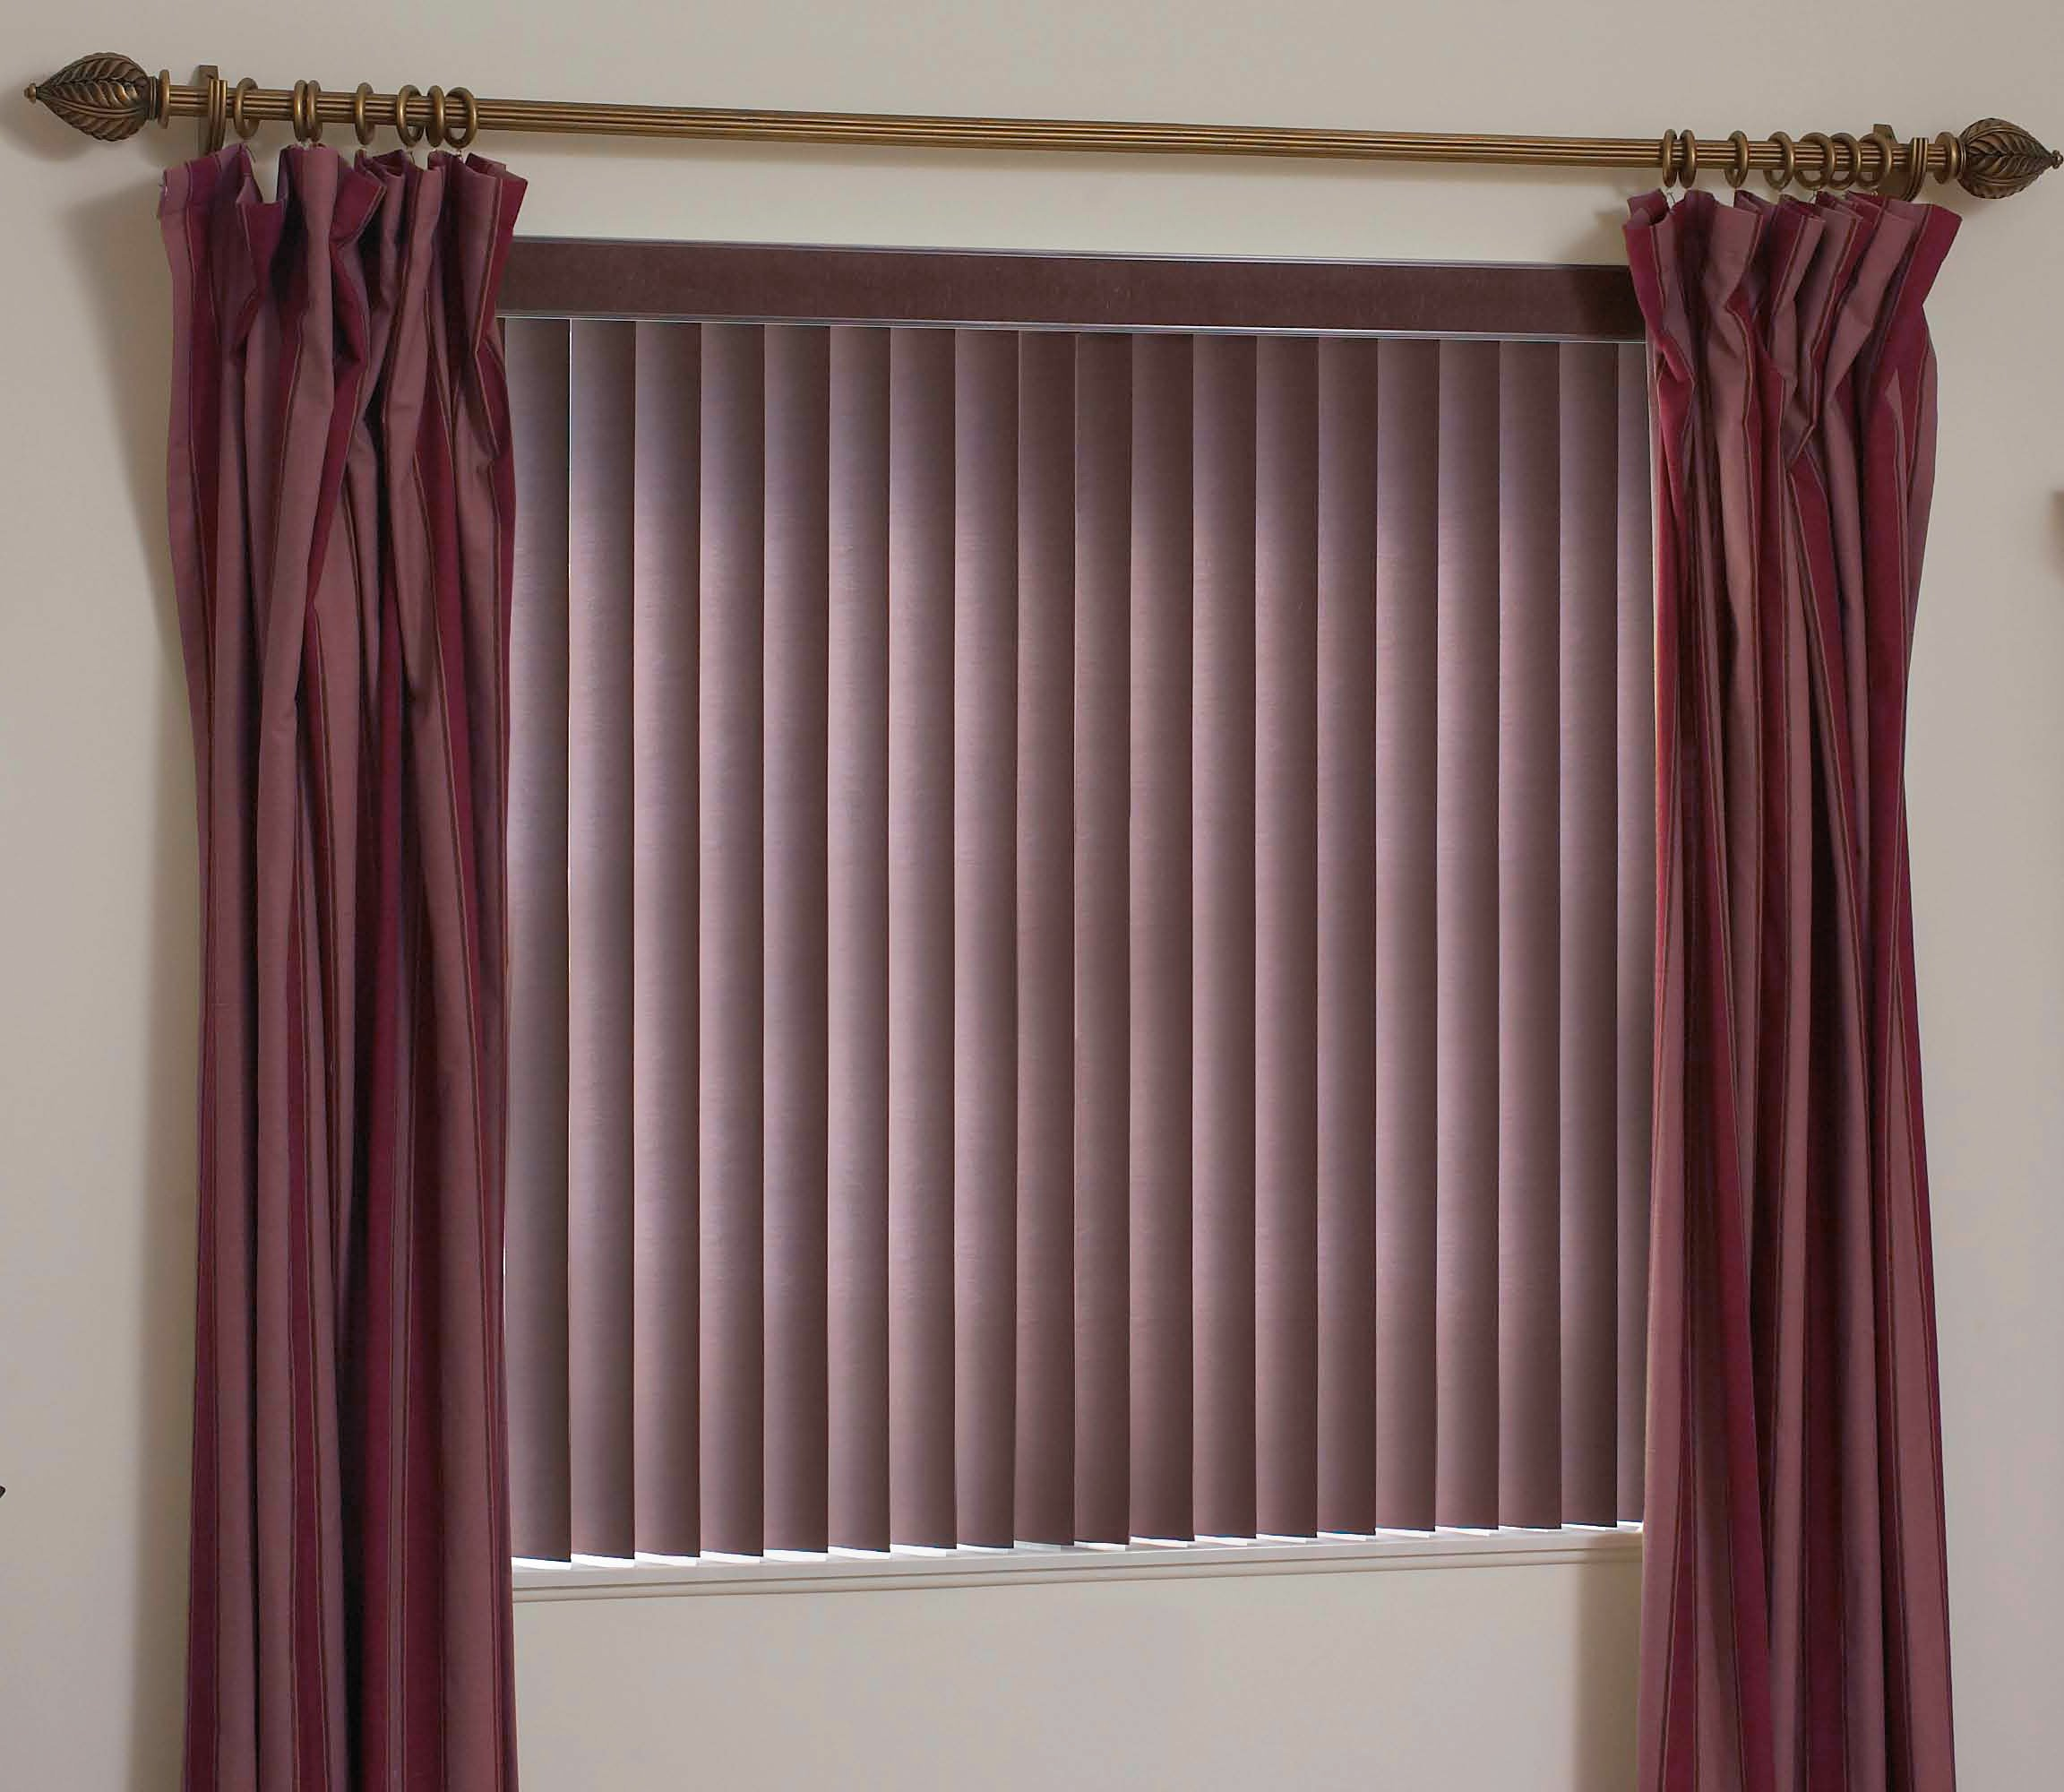 lewis pictures design exciting ides simple and avec idees curtains et windows blinds duette john